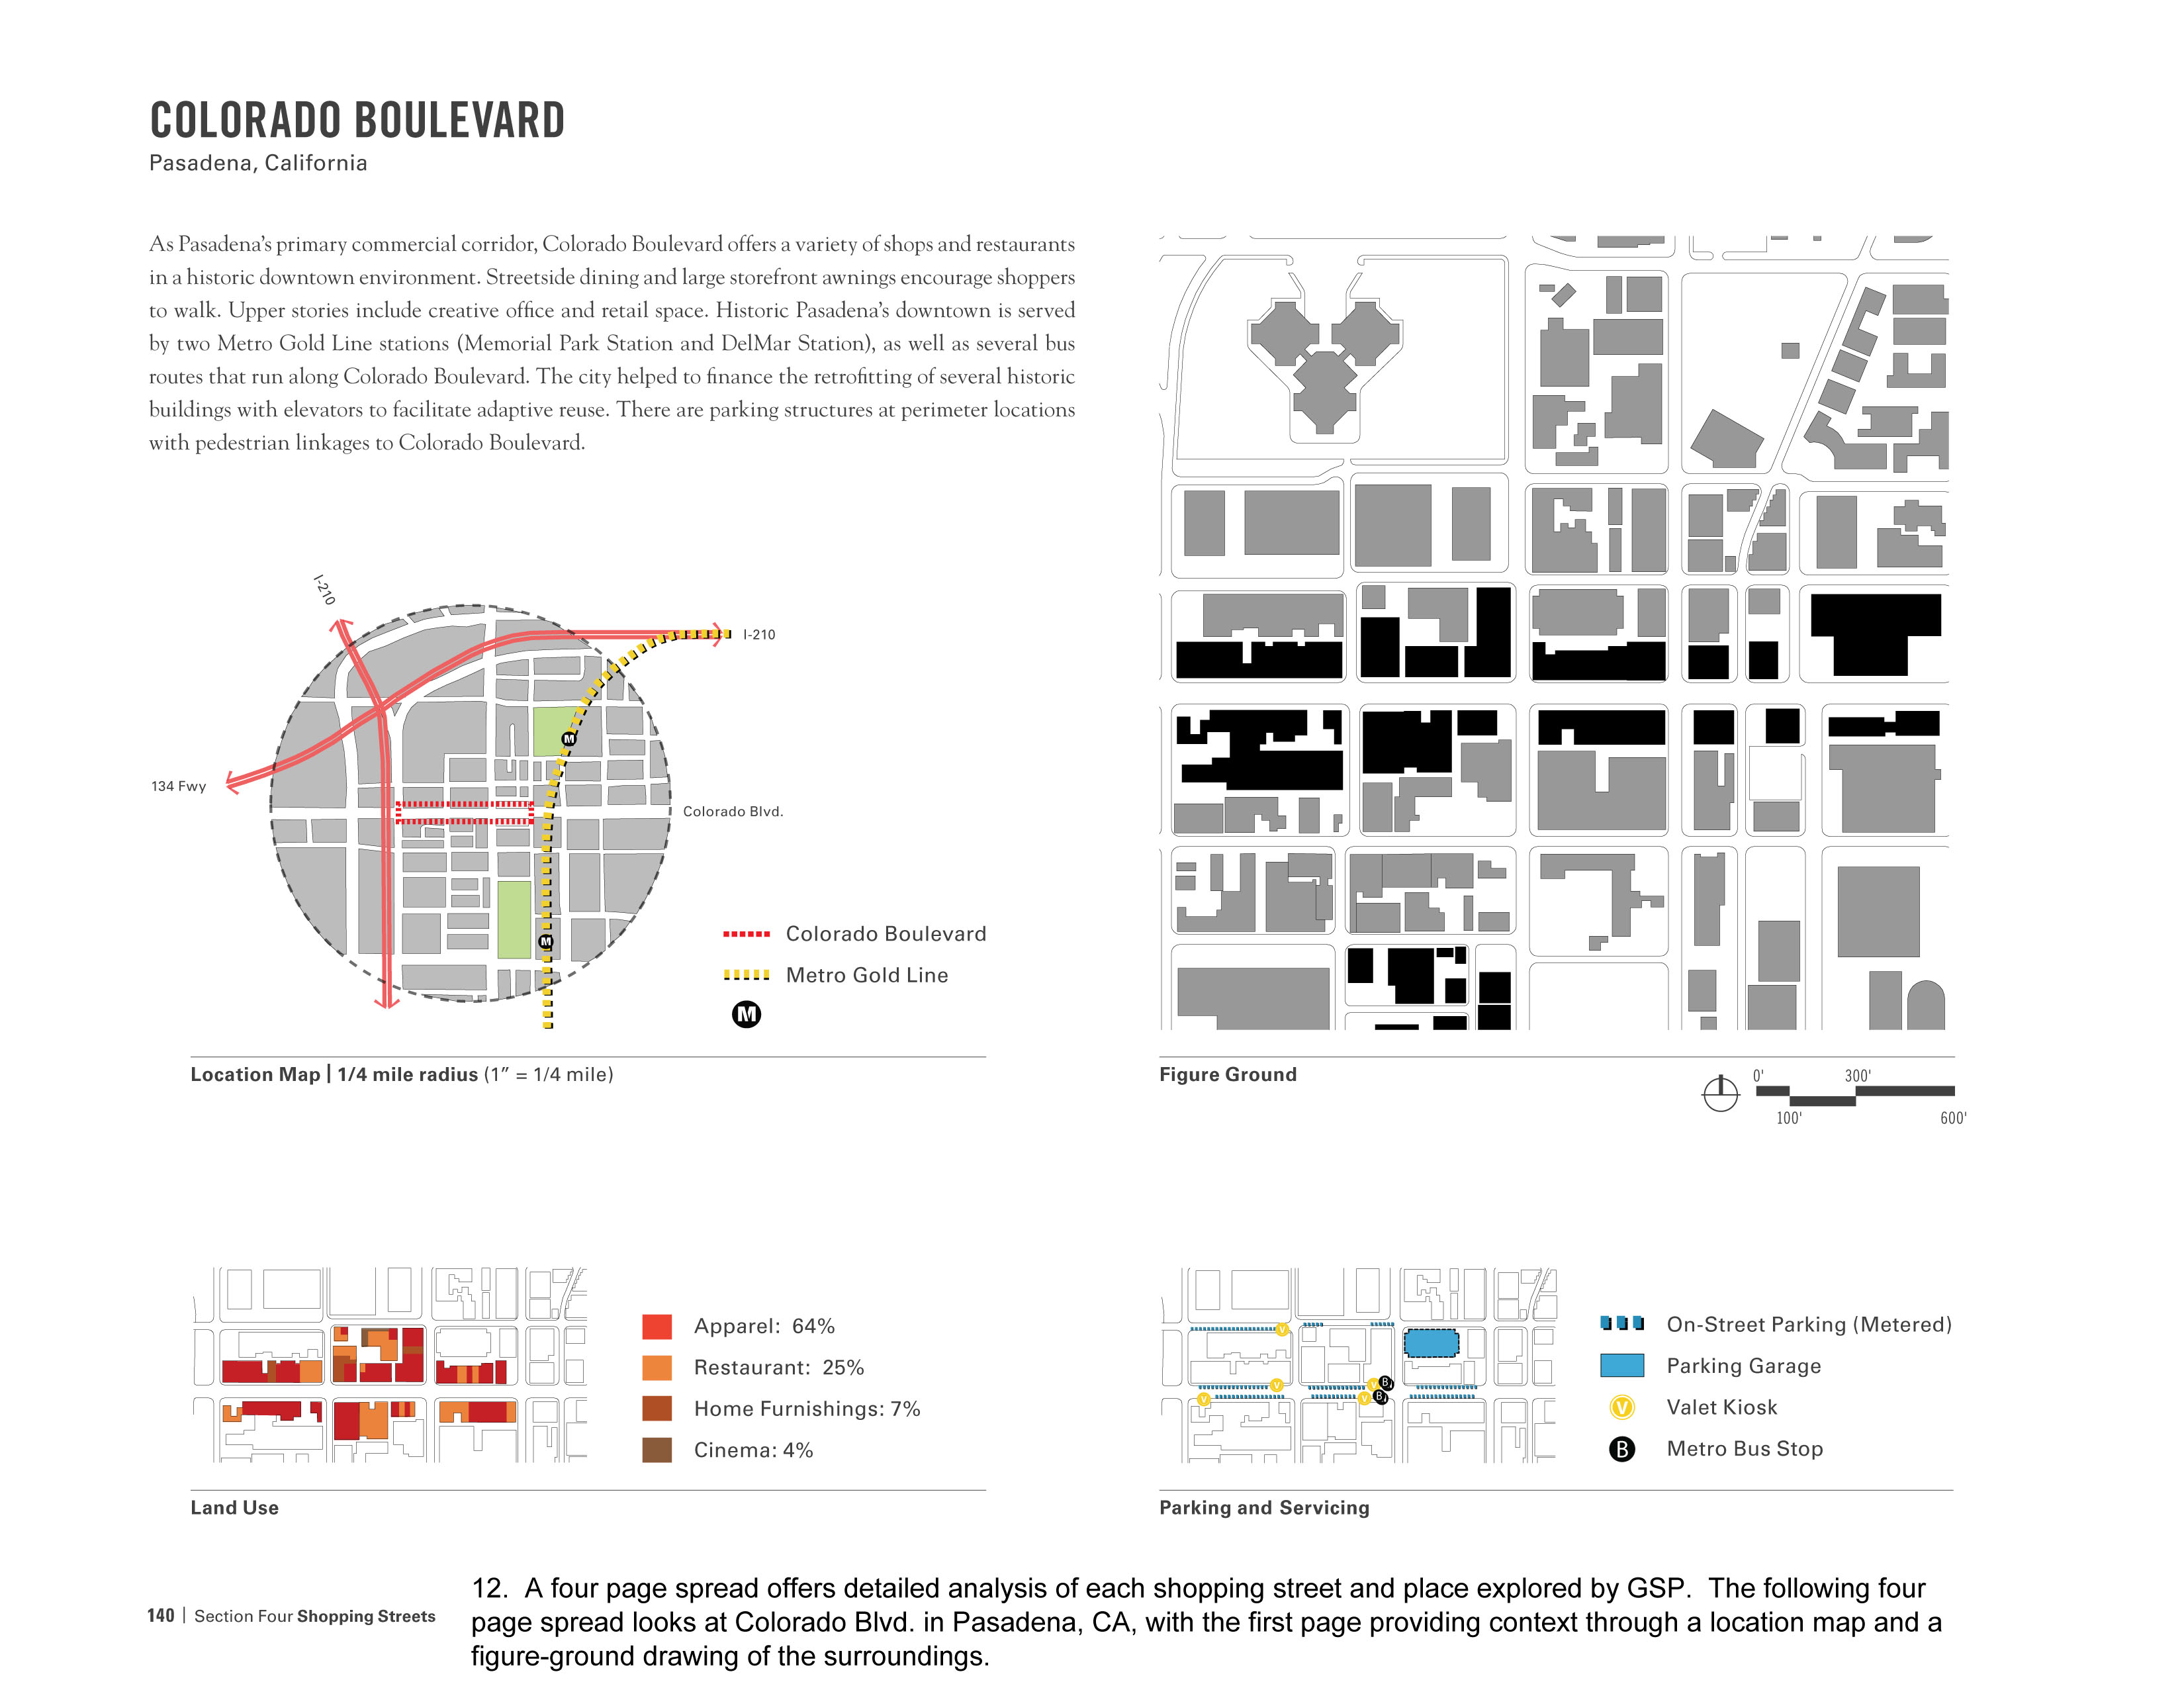 images urban planner in diagram intermediate switch wiring legrand asla 2010 professional awards grid street place essential download hi res image